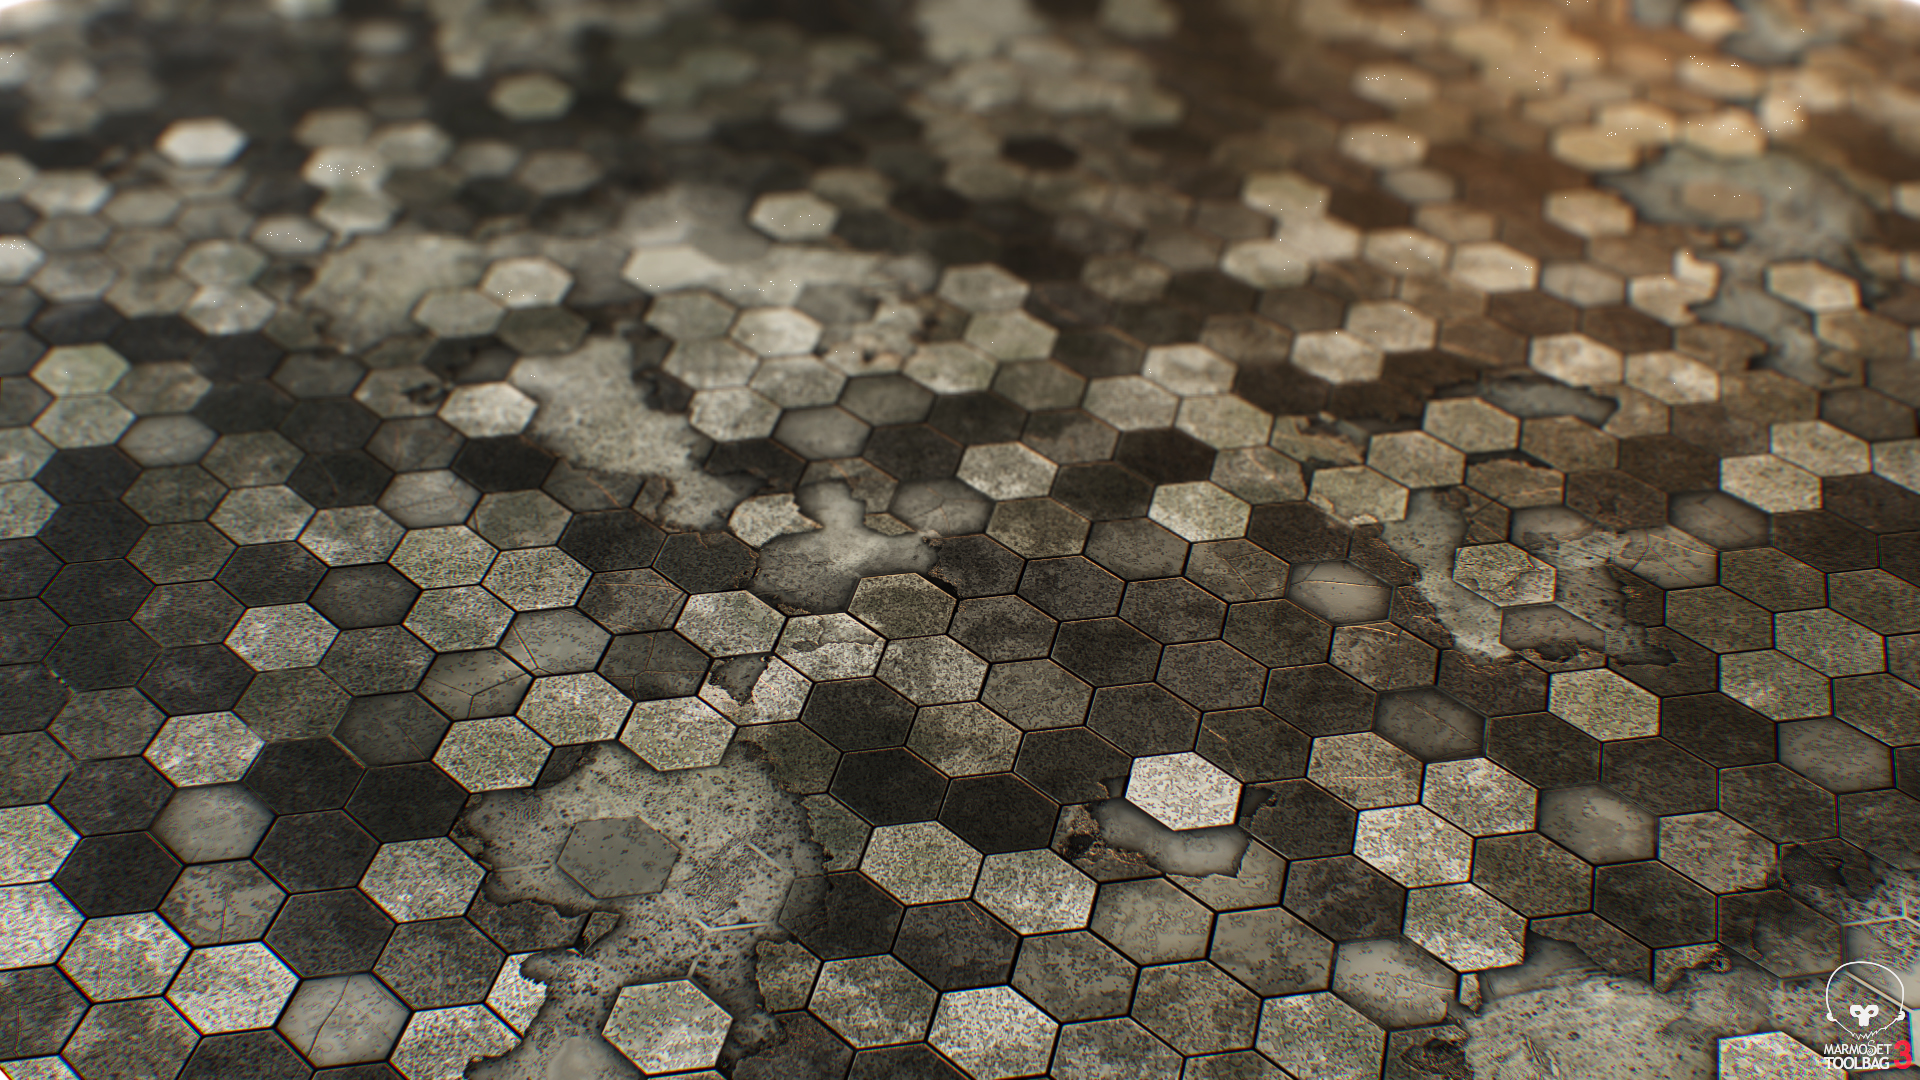 CeramicTiles_Cracked_01_Applied.jpg